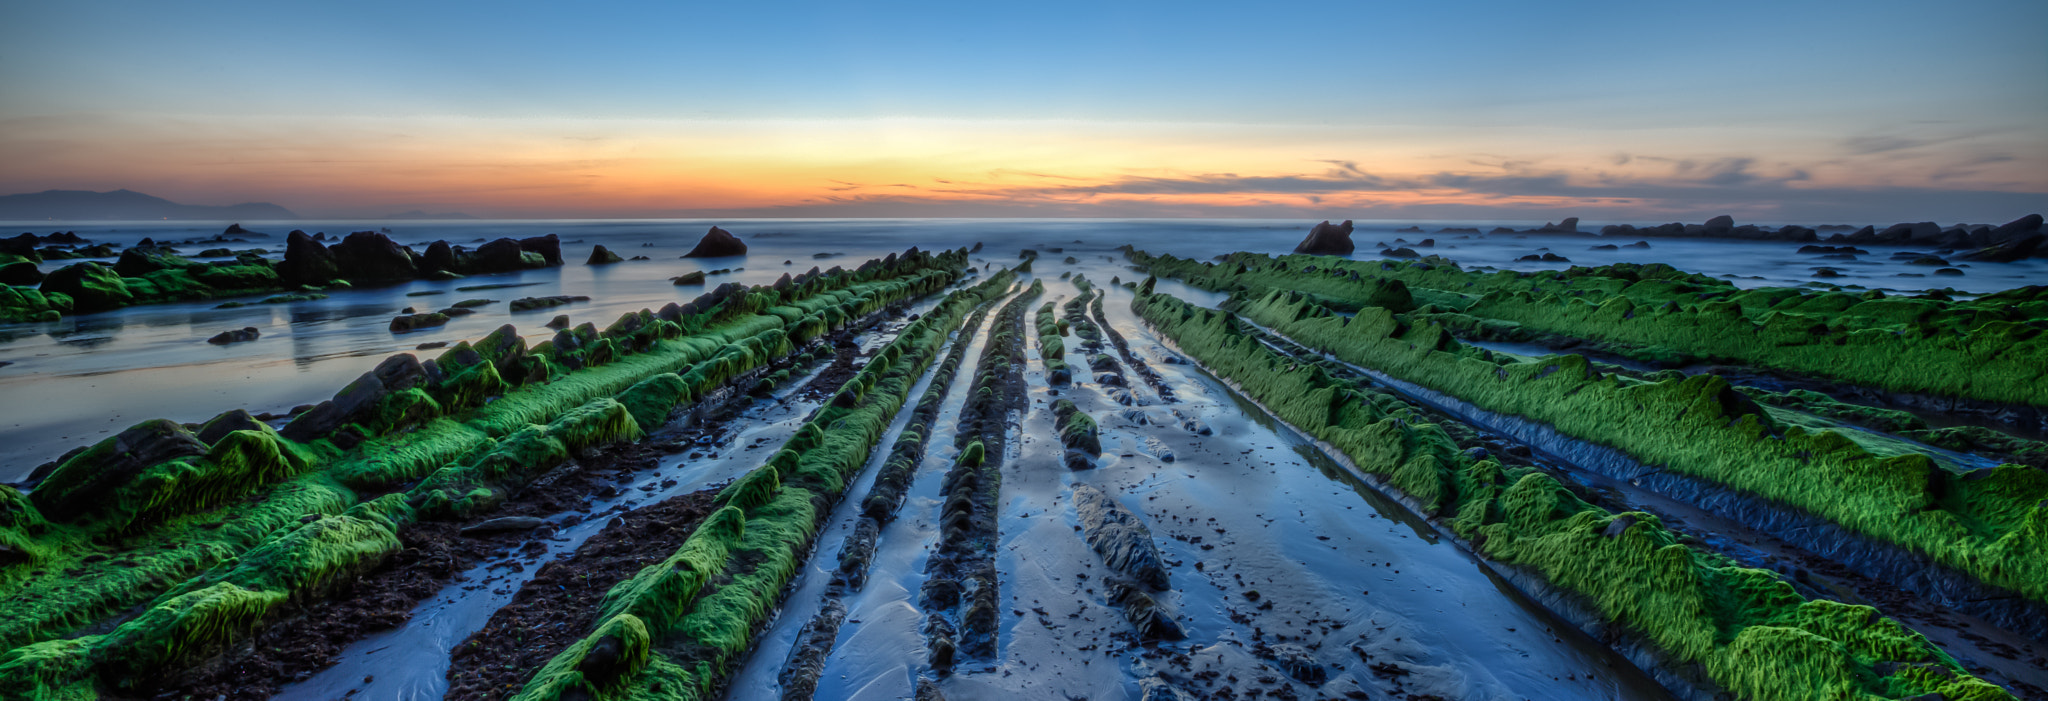 Photograph Barrika by Jorge Mambrilla on 500px